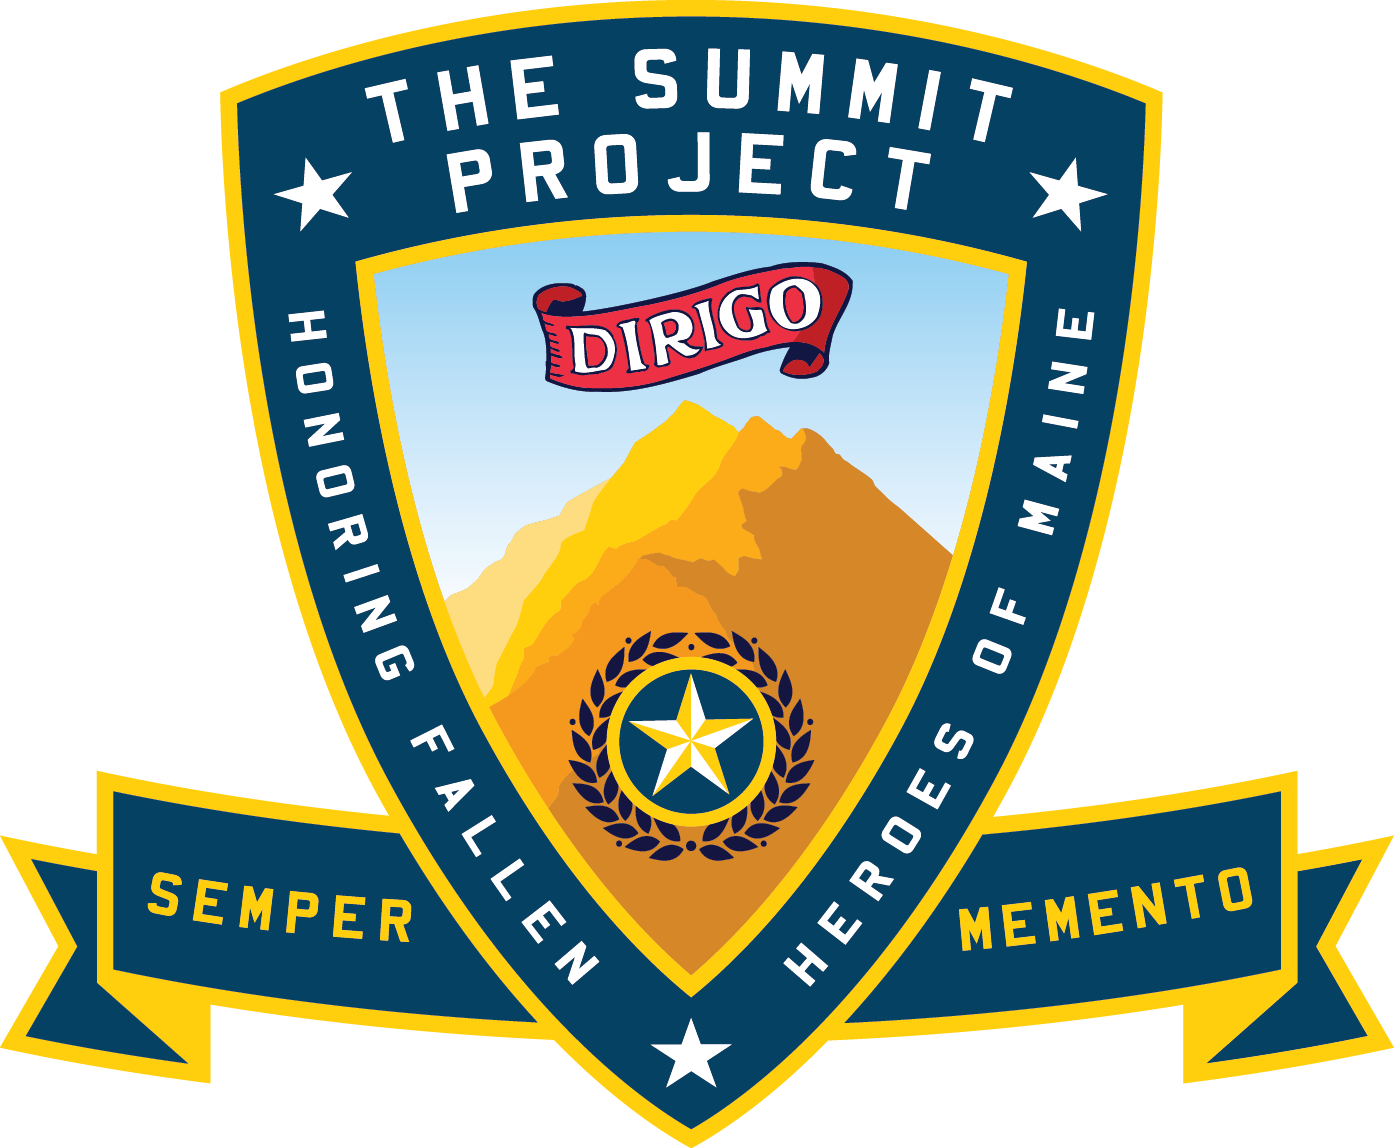 SummitProject_logo_RBG